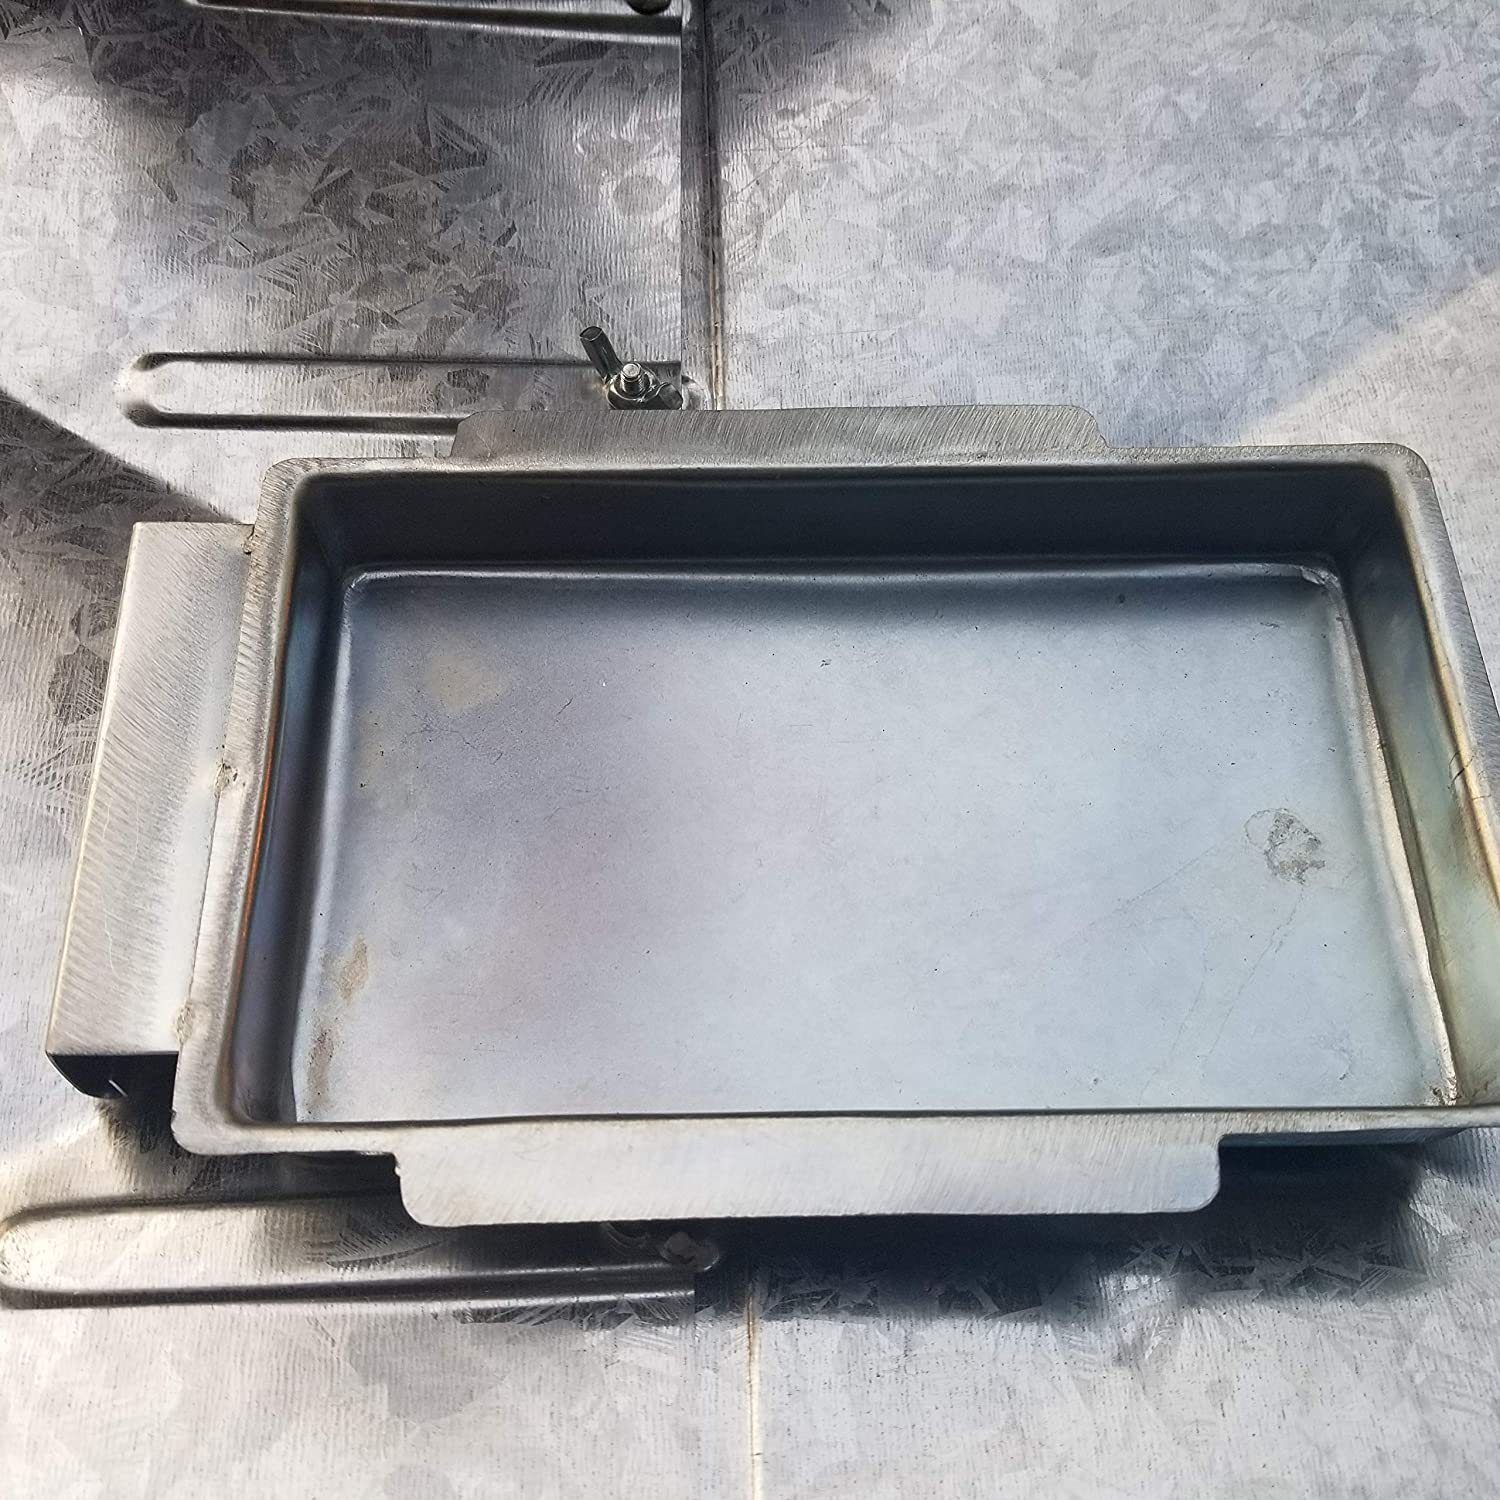 Backyard Grill Kenmore BHG Outdoor Bazaar Replacement Grease Tray Set for BBQ Grill Models from Nexgrill Dyna Glo Uniflame and Others 30